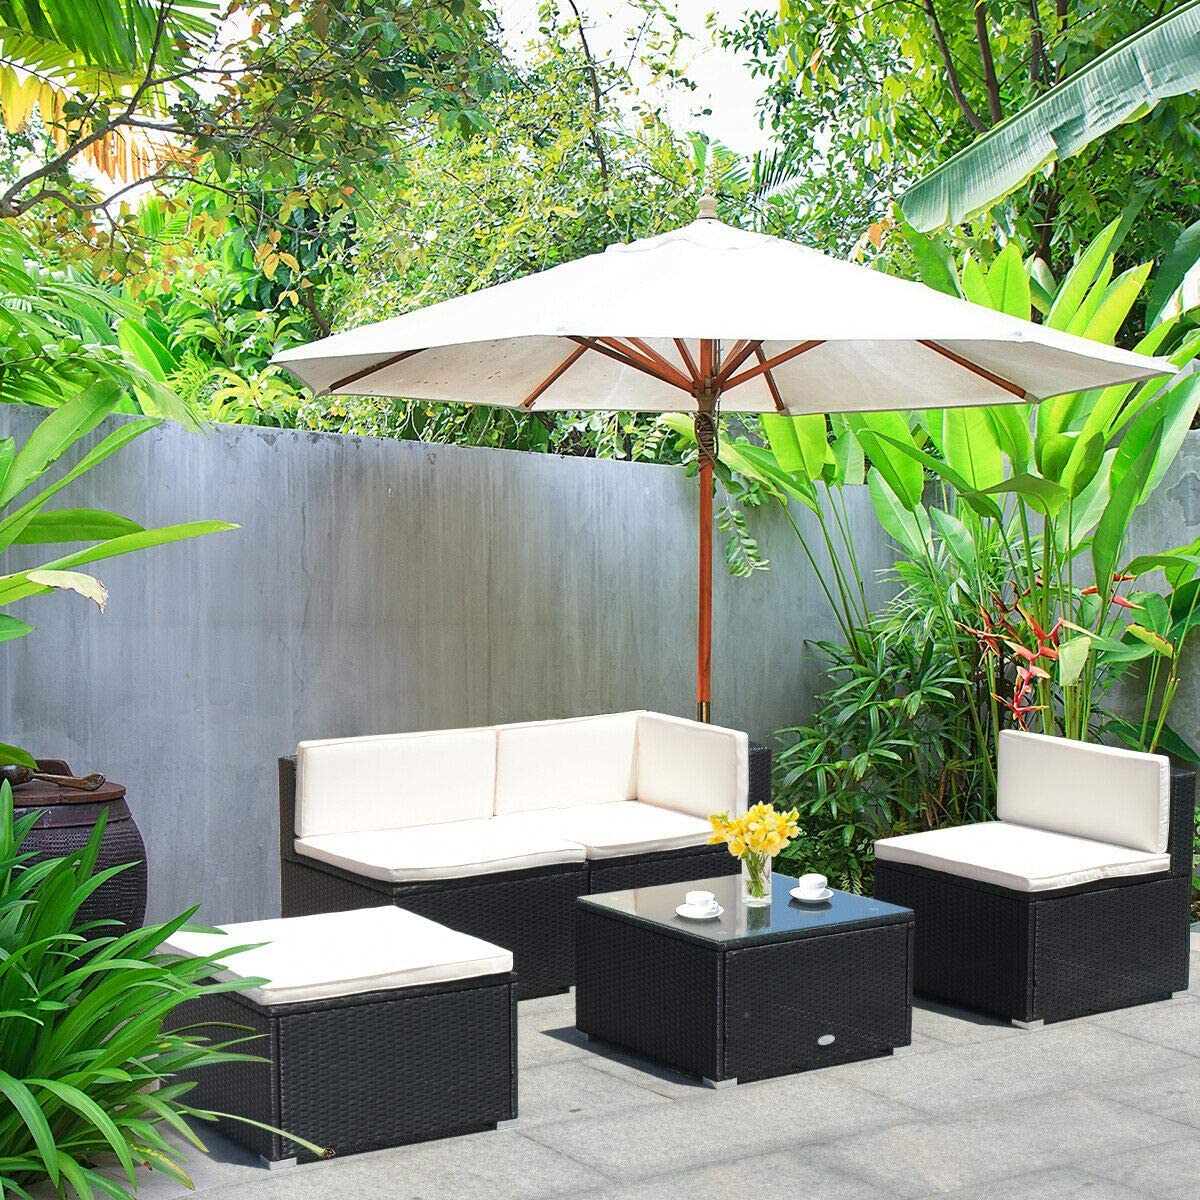 Patio Furniture Accessories Outdoor Conversation Set Rattan Furniture With Sponge Cushions Tangkula 5 Pcs Patio Furniture Sets Modern Wicker Coffee Table With Sofas Wicker Combination Furniture For Outdoor Indoor Patio Lawn